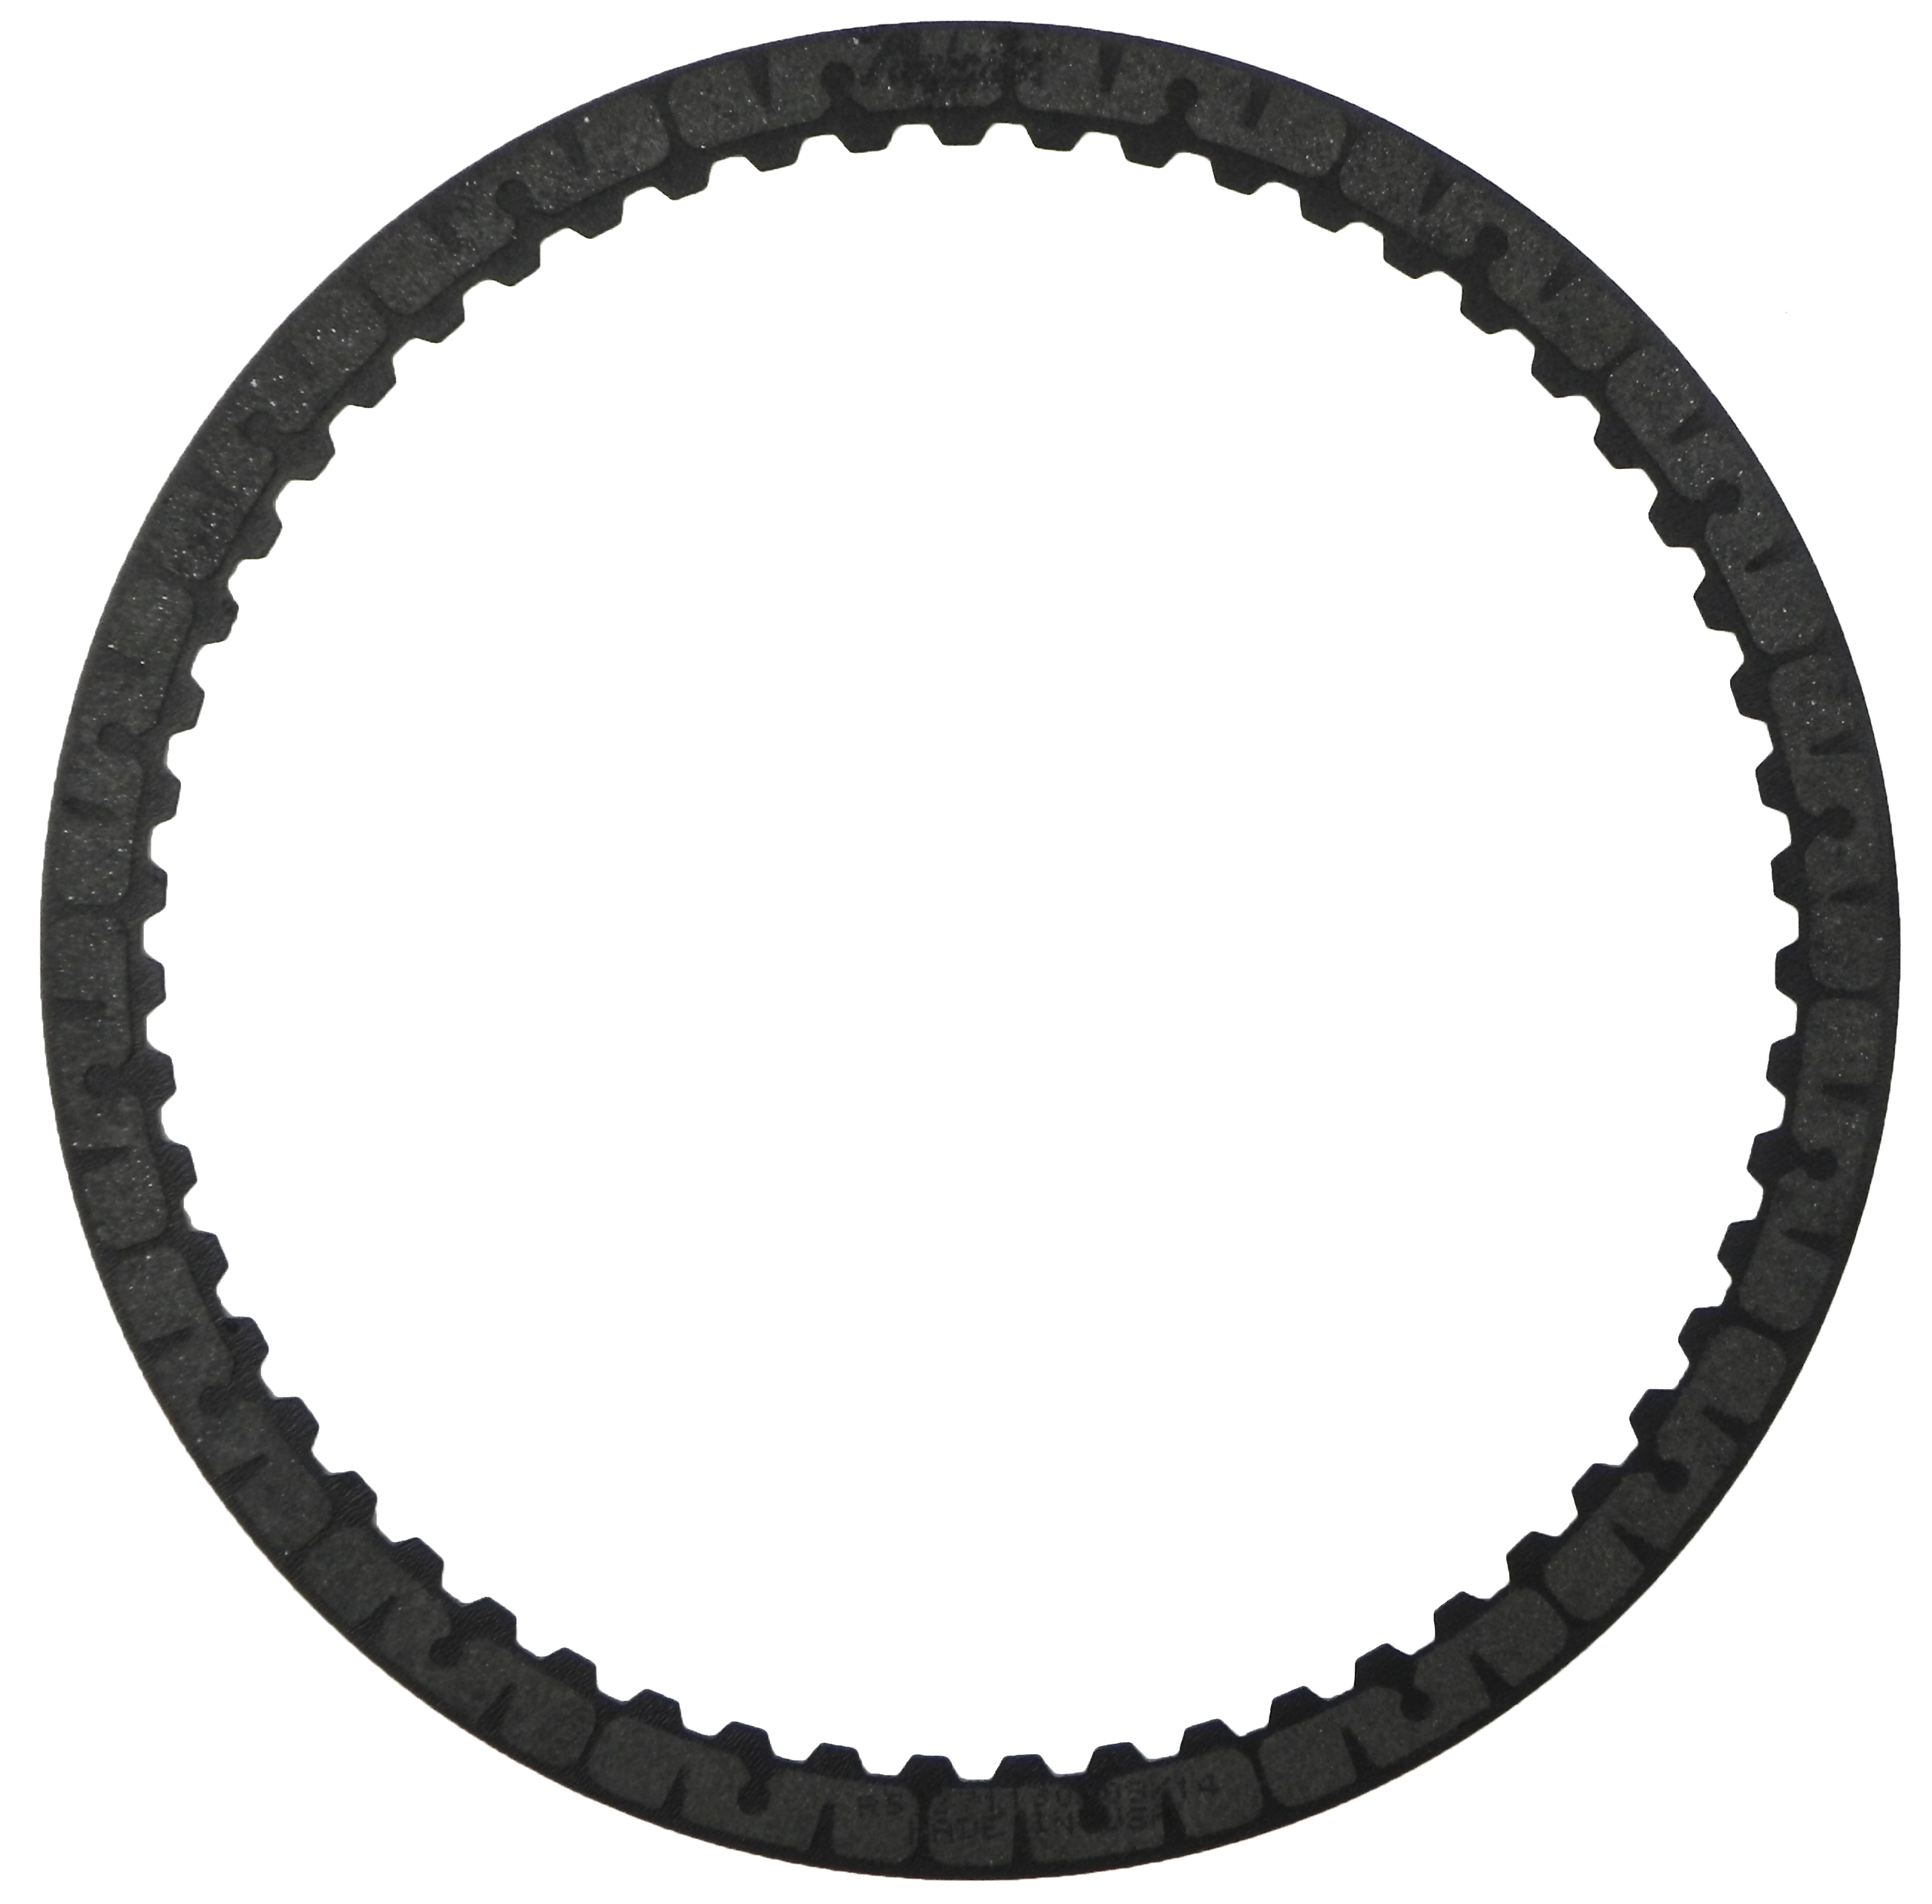 R572711 | 2001-ON Friction Clutch Plate High Energy C2 4, 5, 6 High Energy